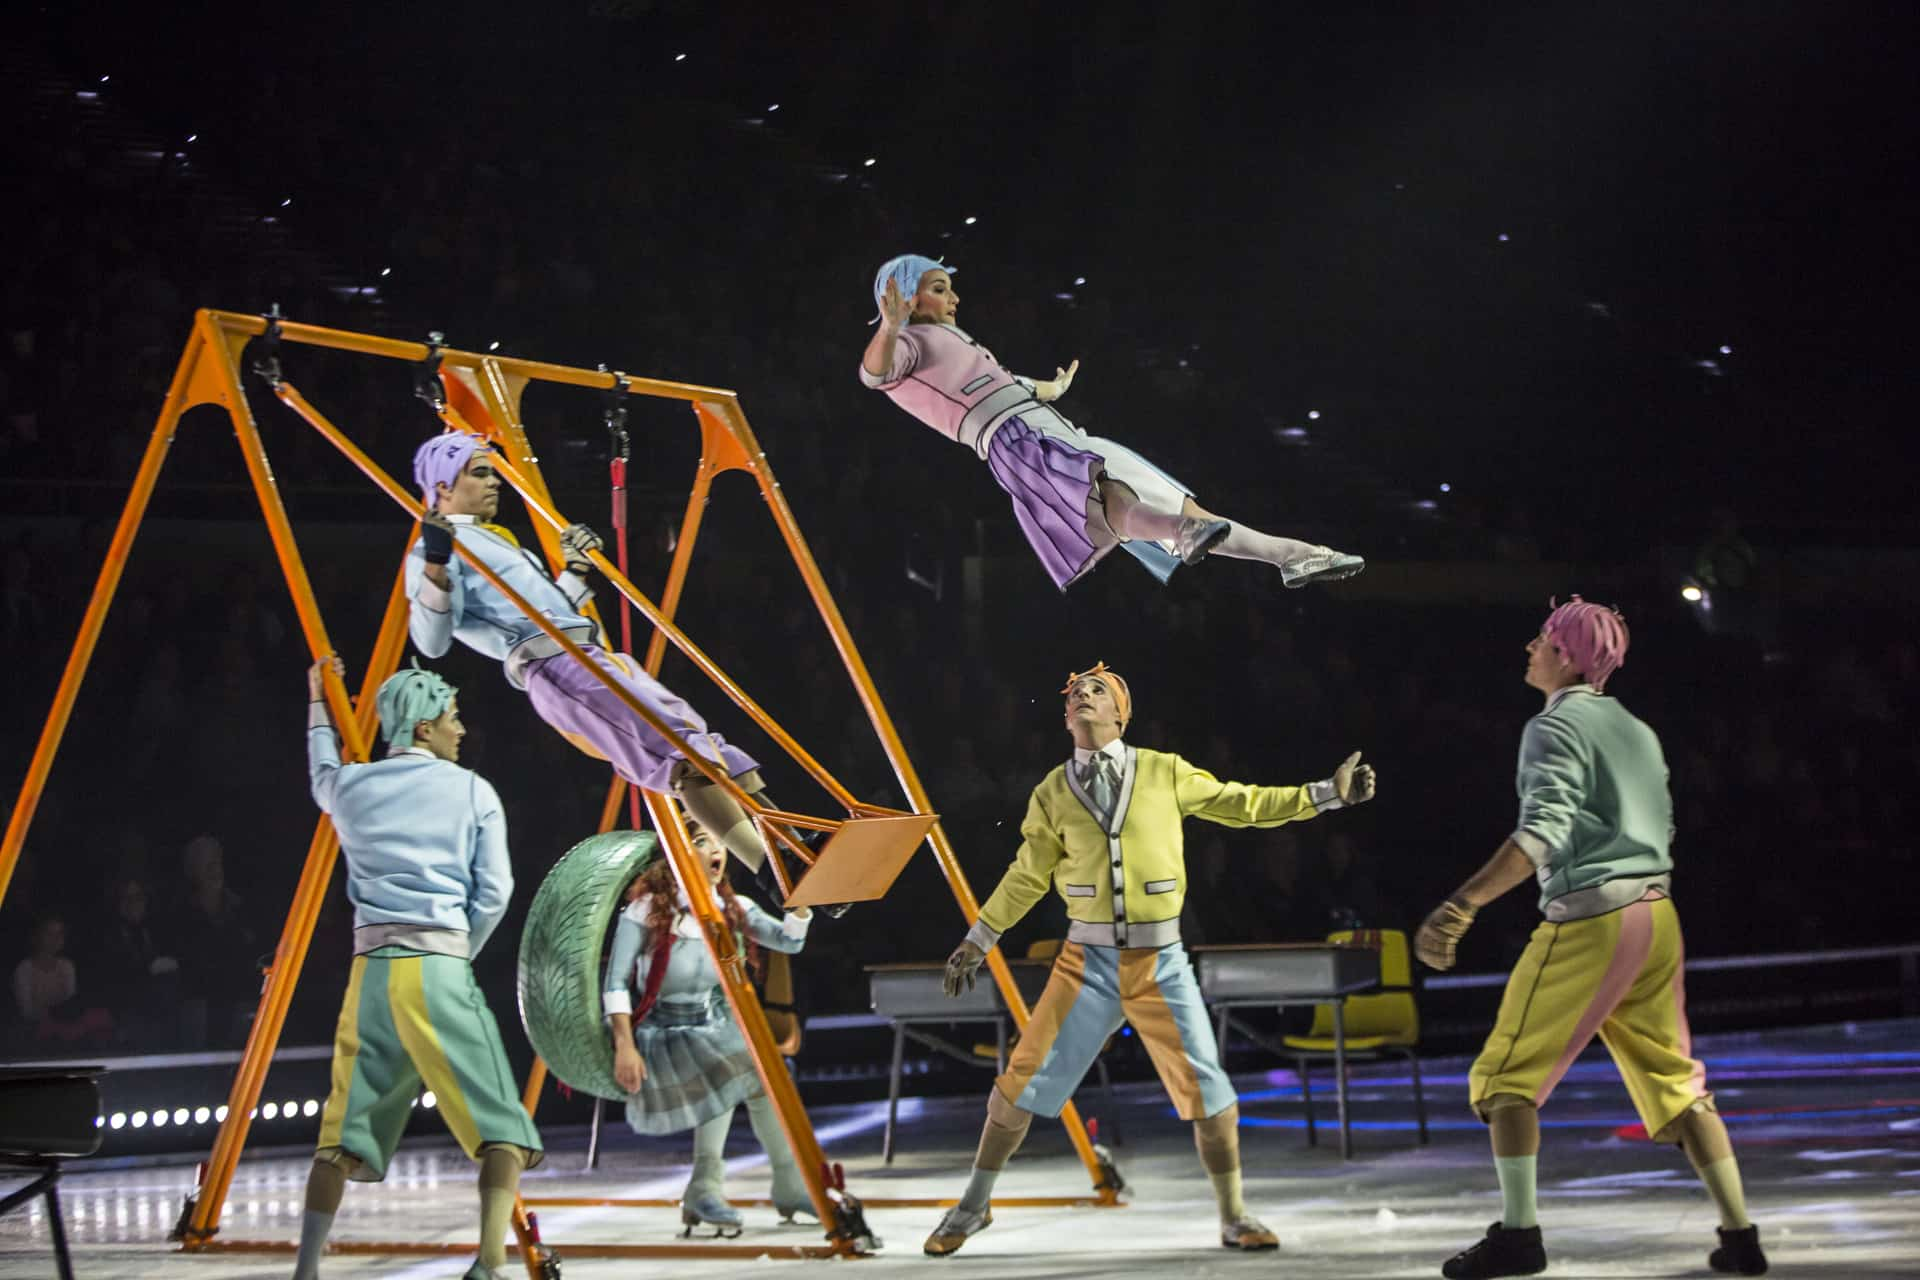 Tickets on sale for Cirque du Soleil 'Crystal' in Edmonton 9/21